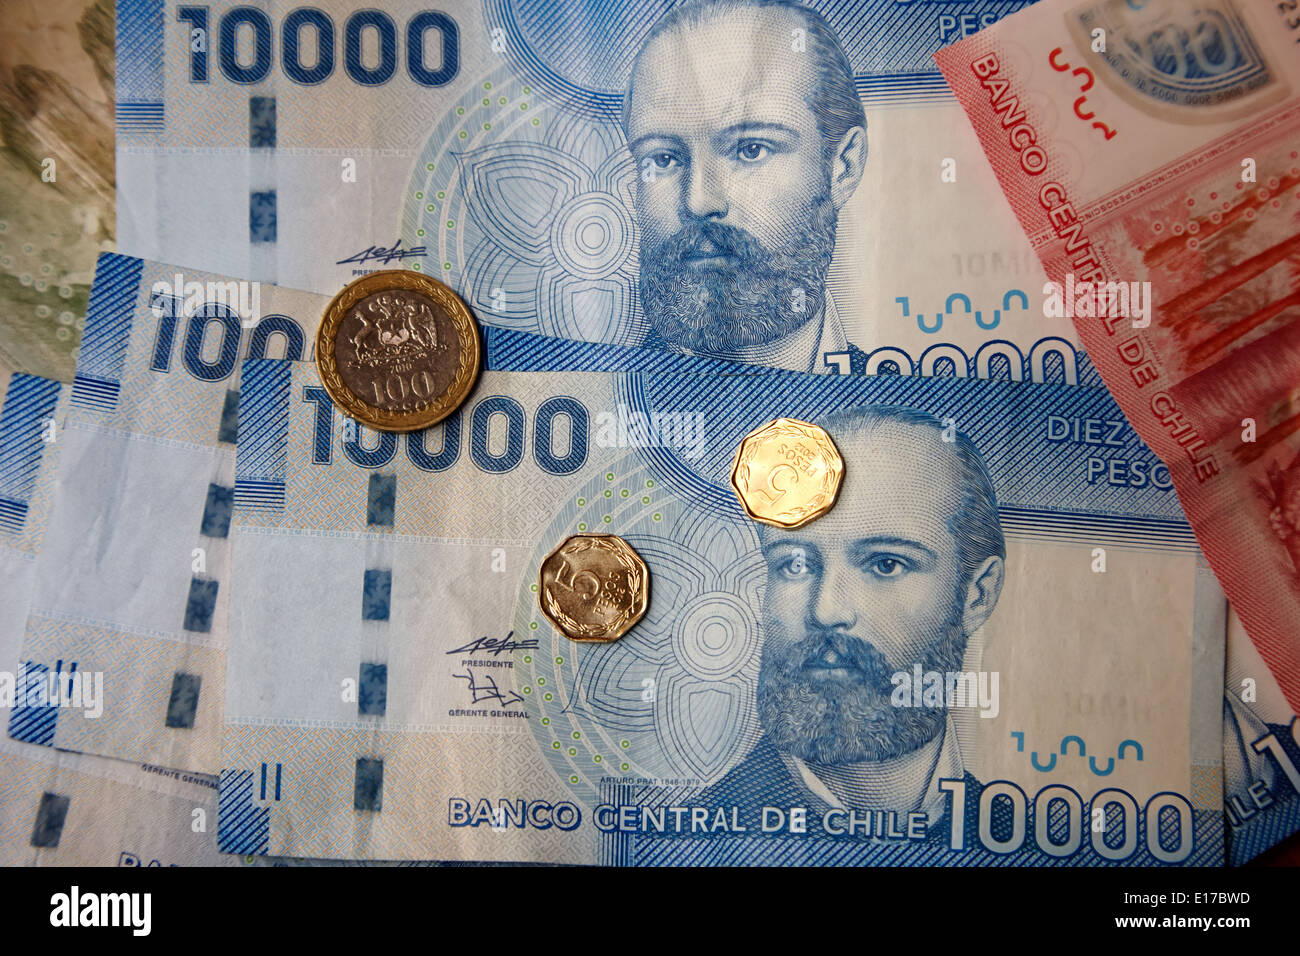 chilean peso notes and coins - Stock Image